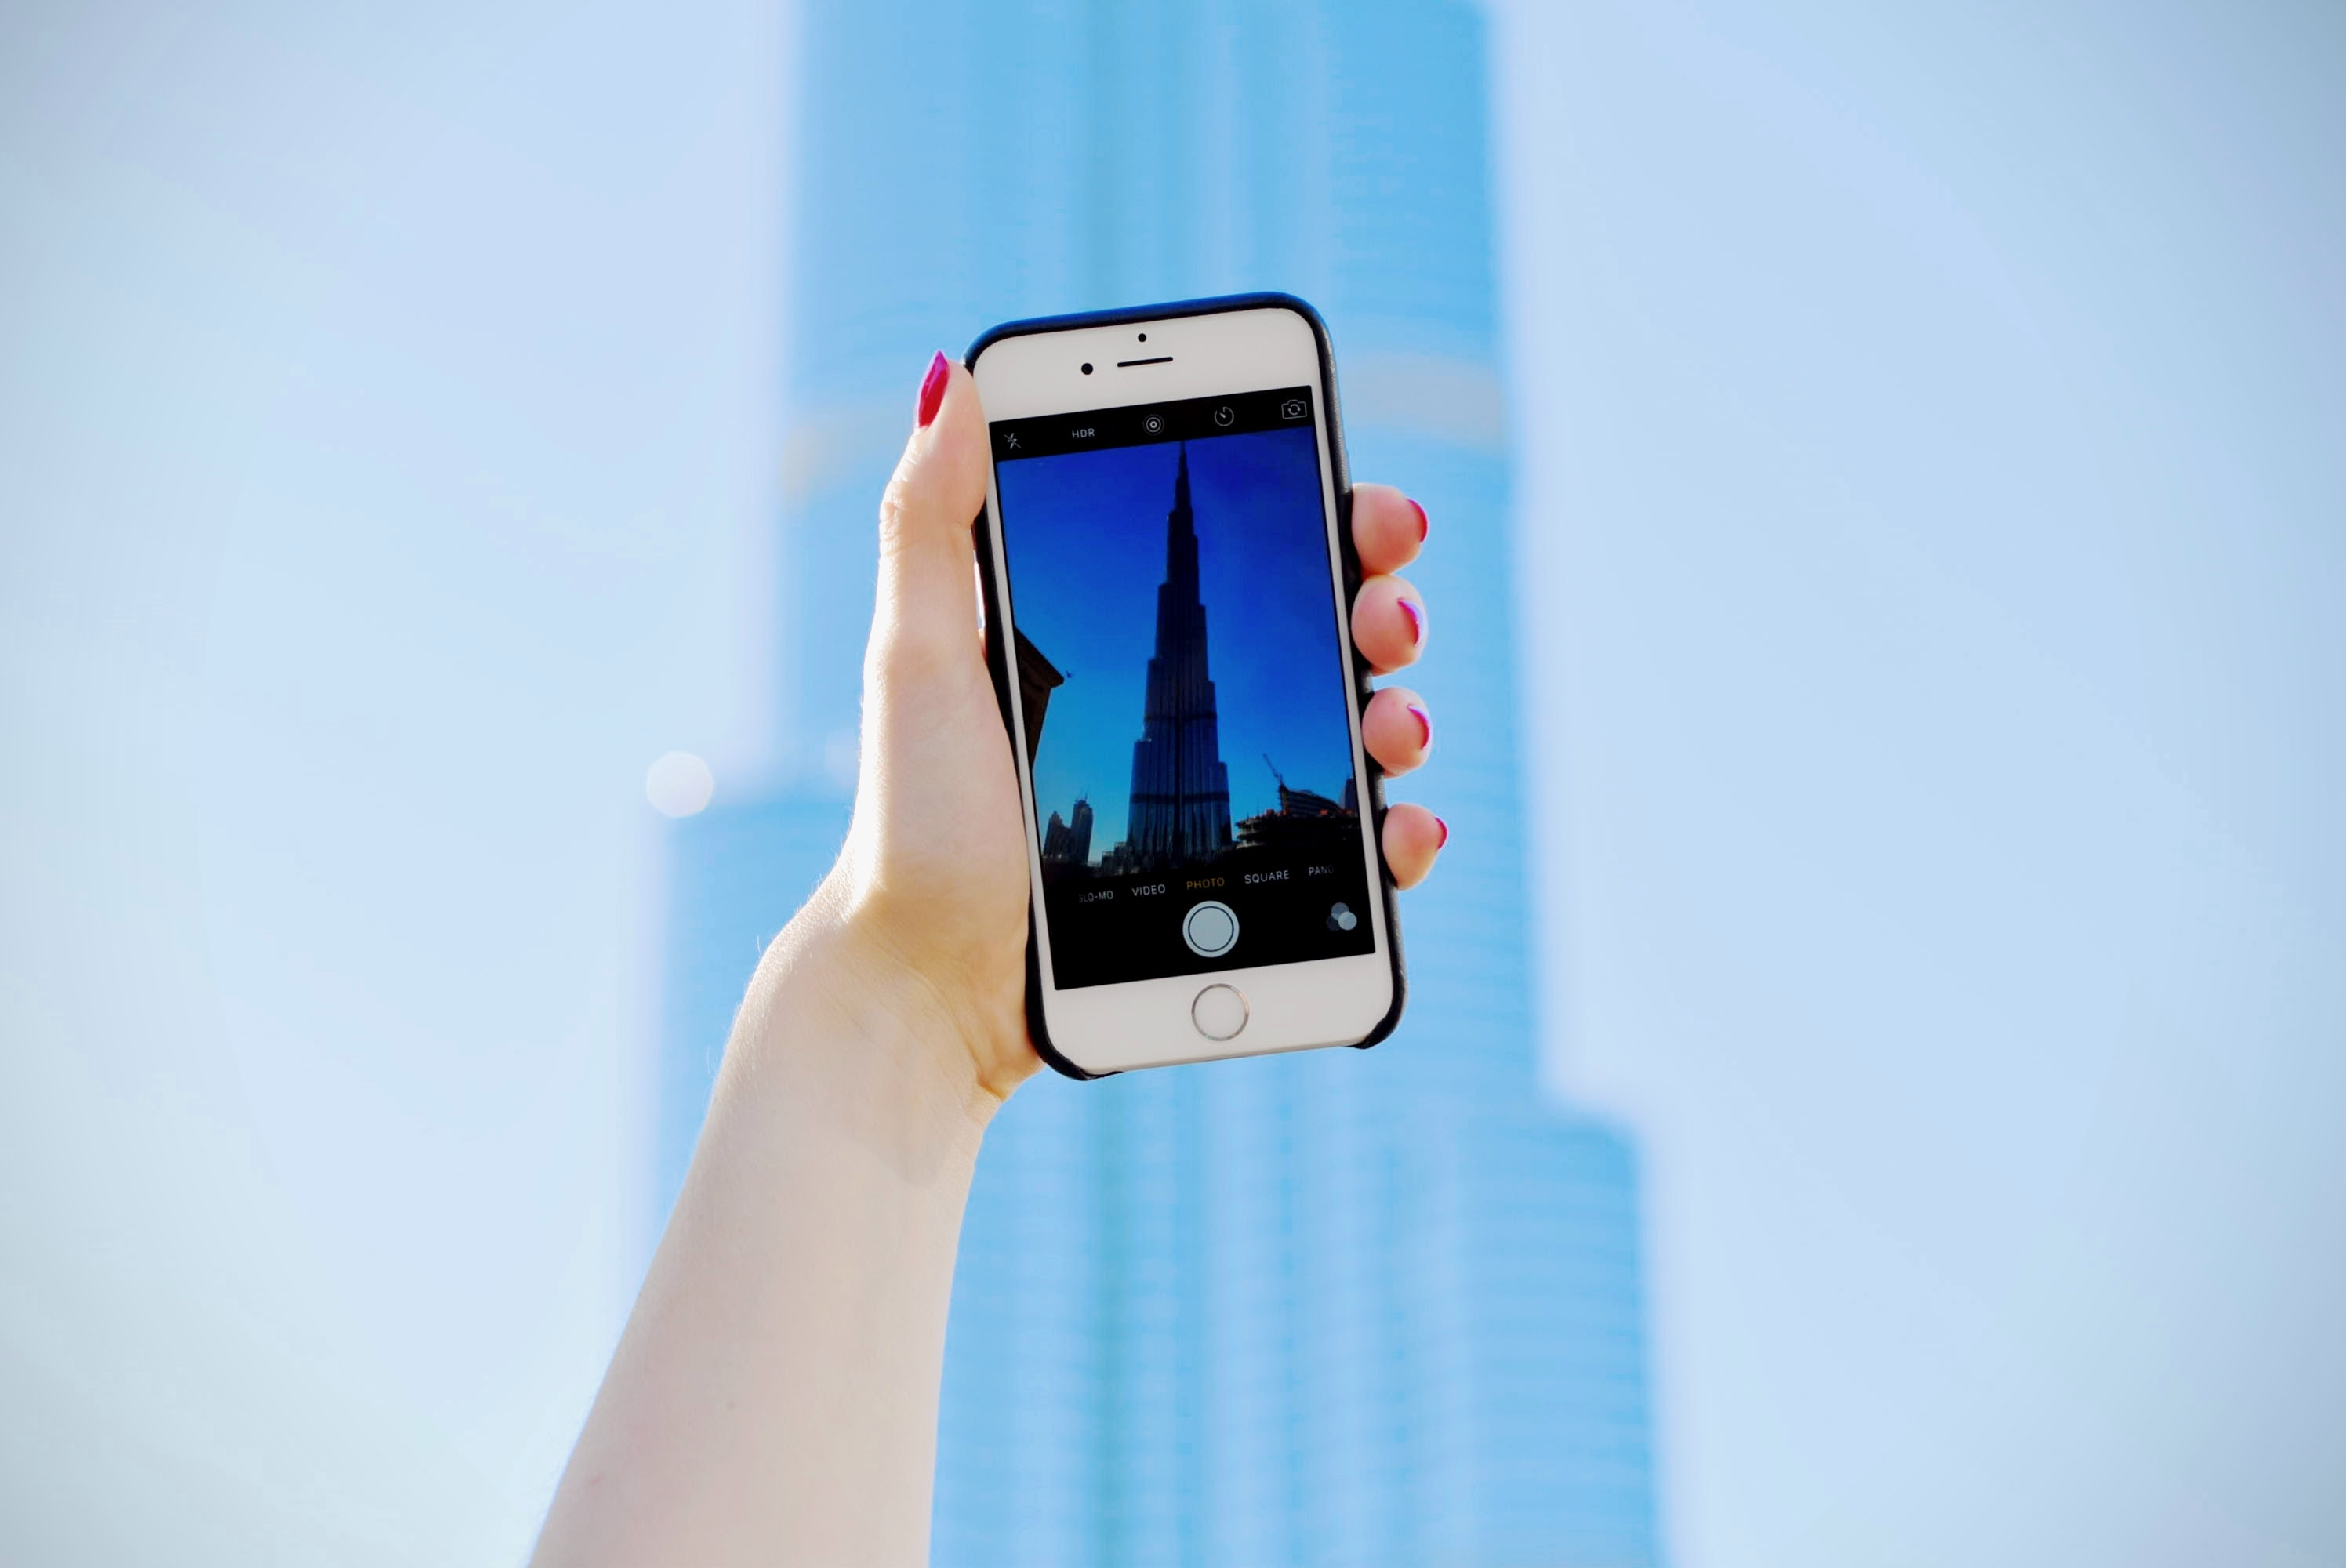 A woman's hand holding an iPhone with its camera pointed at Burj Khalifa in Dubai